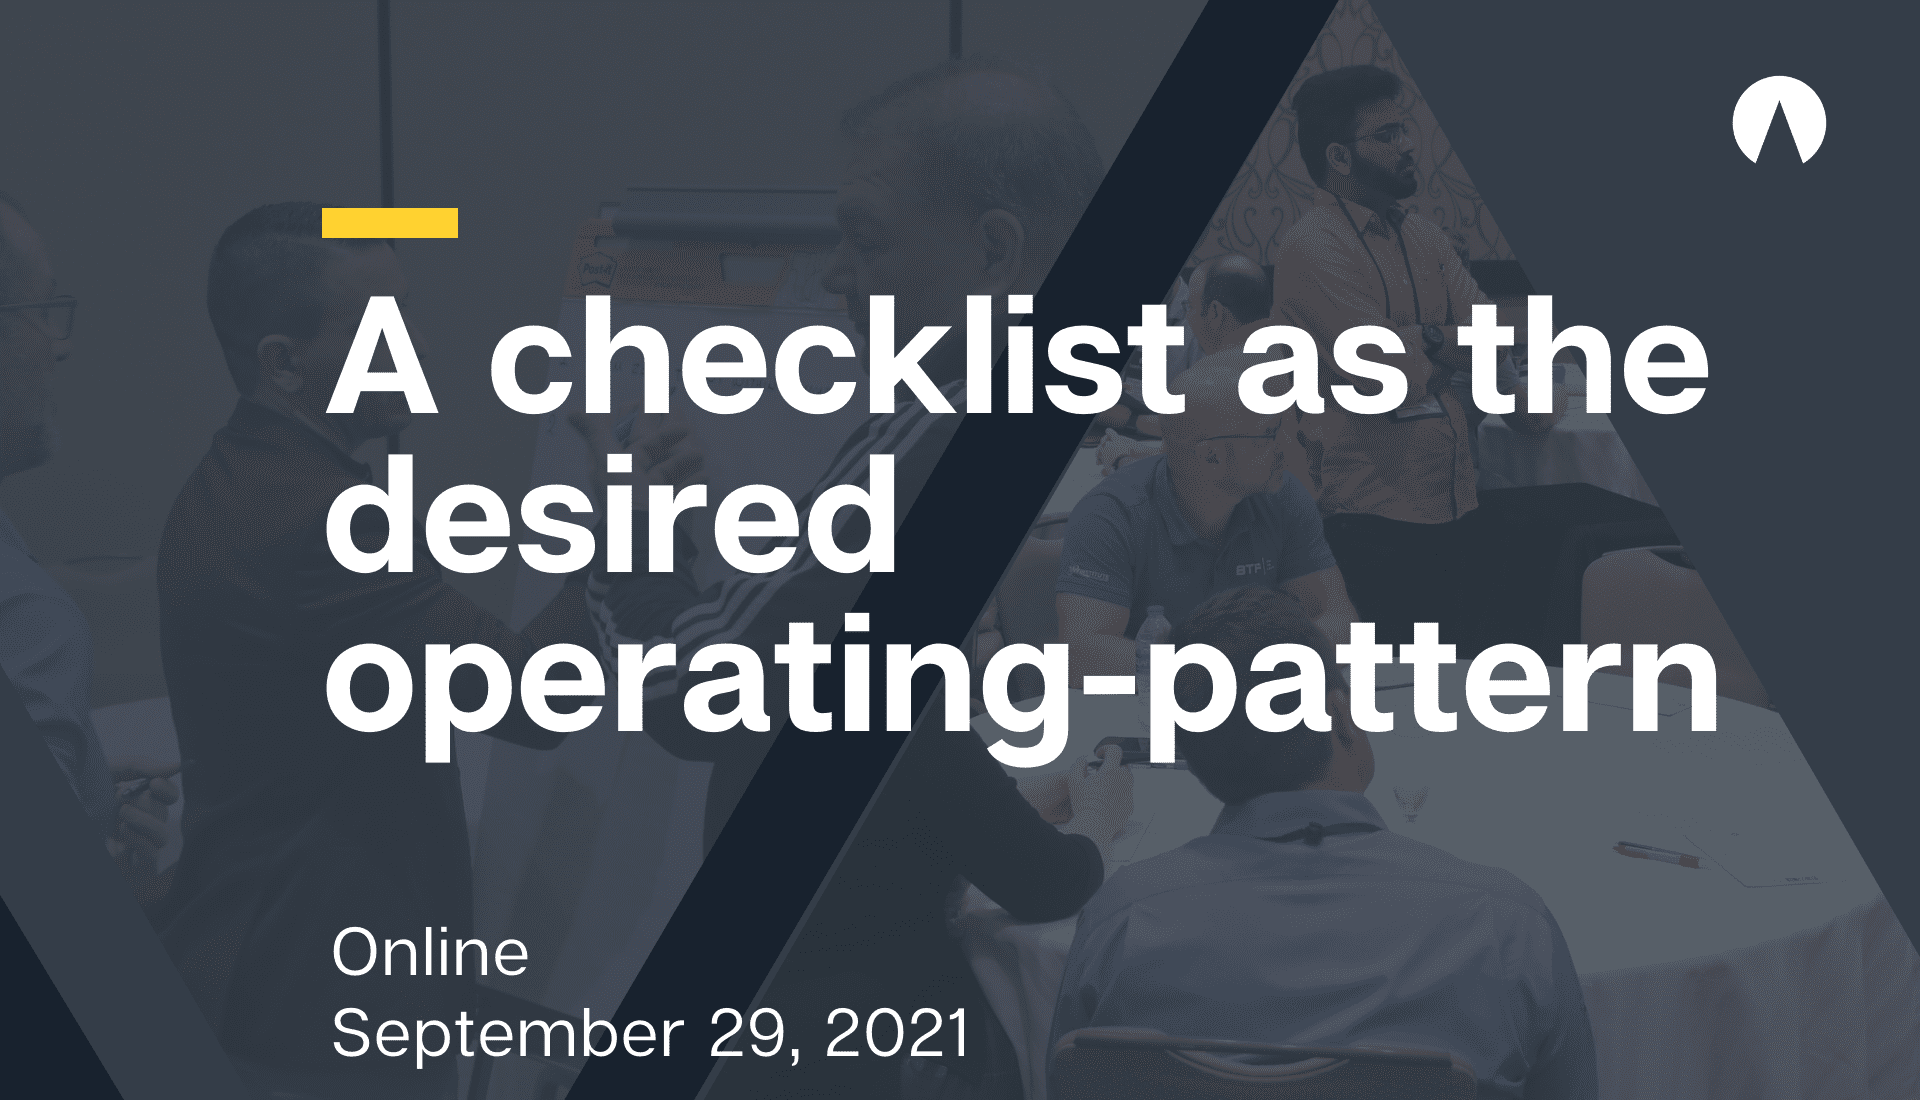 A checklist as the desired operating-pattern